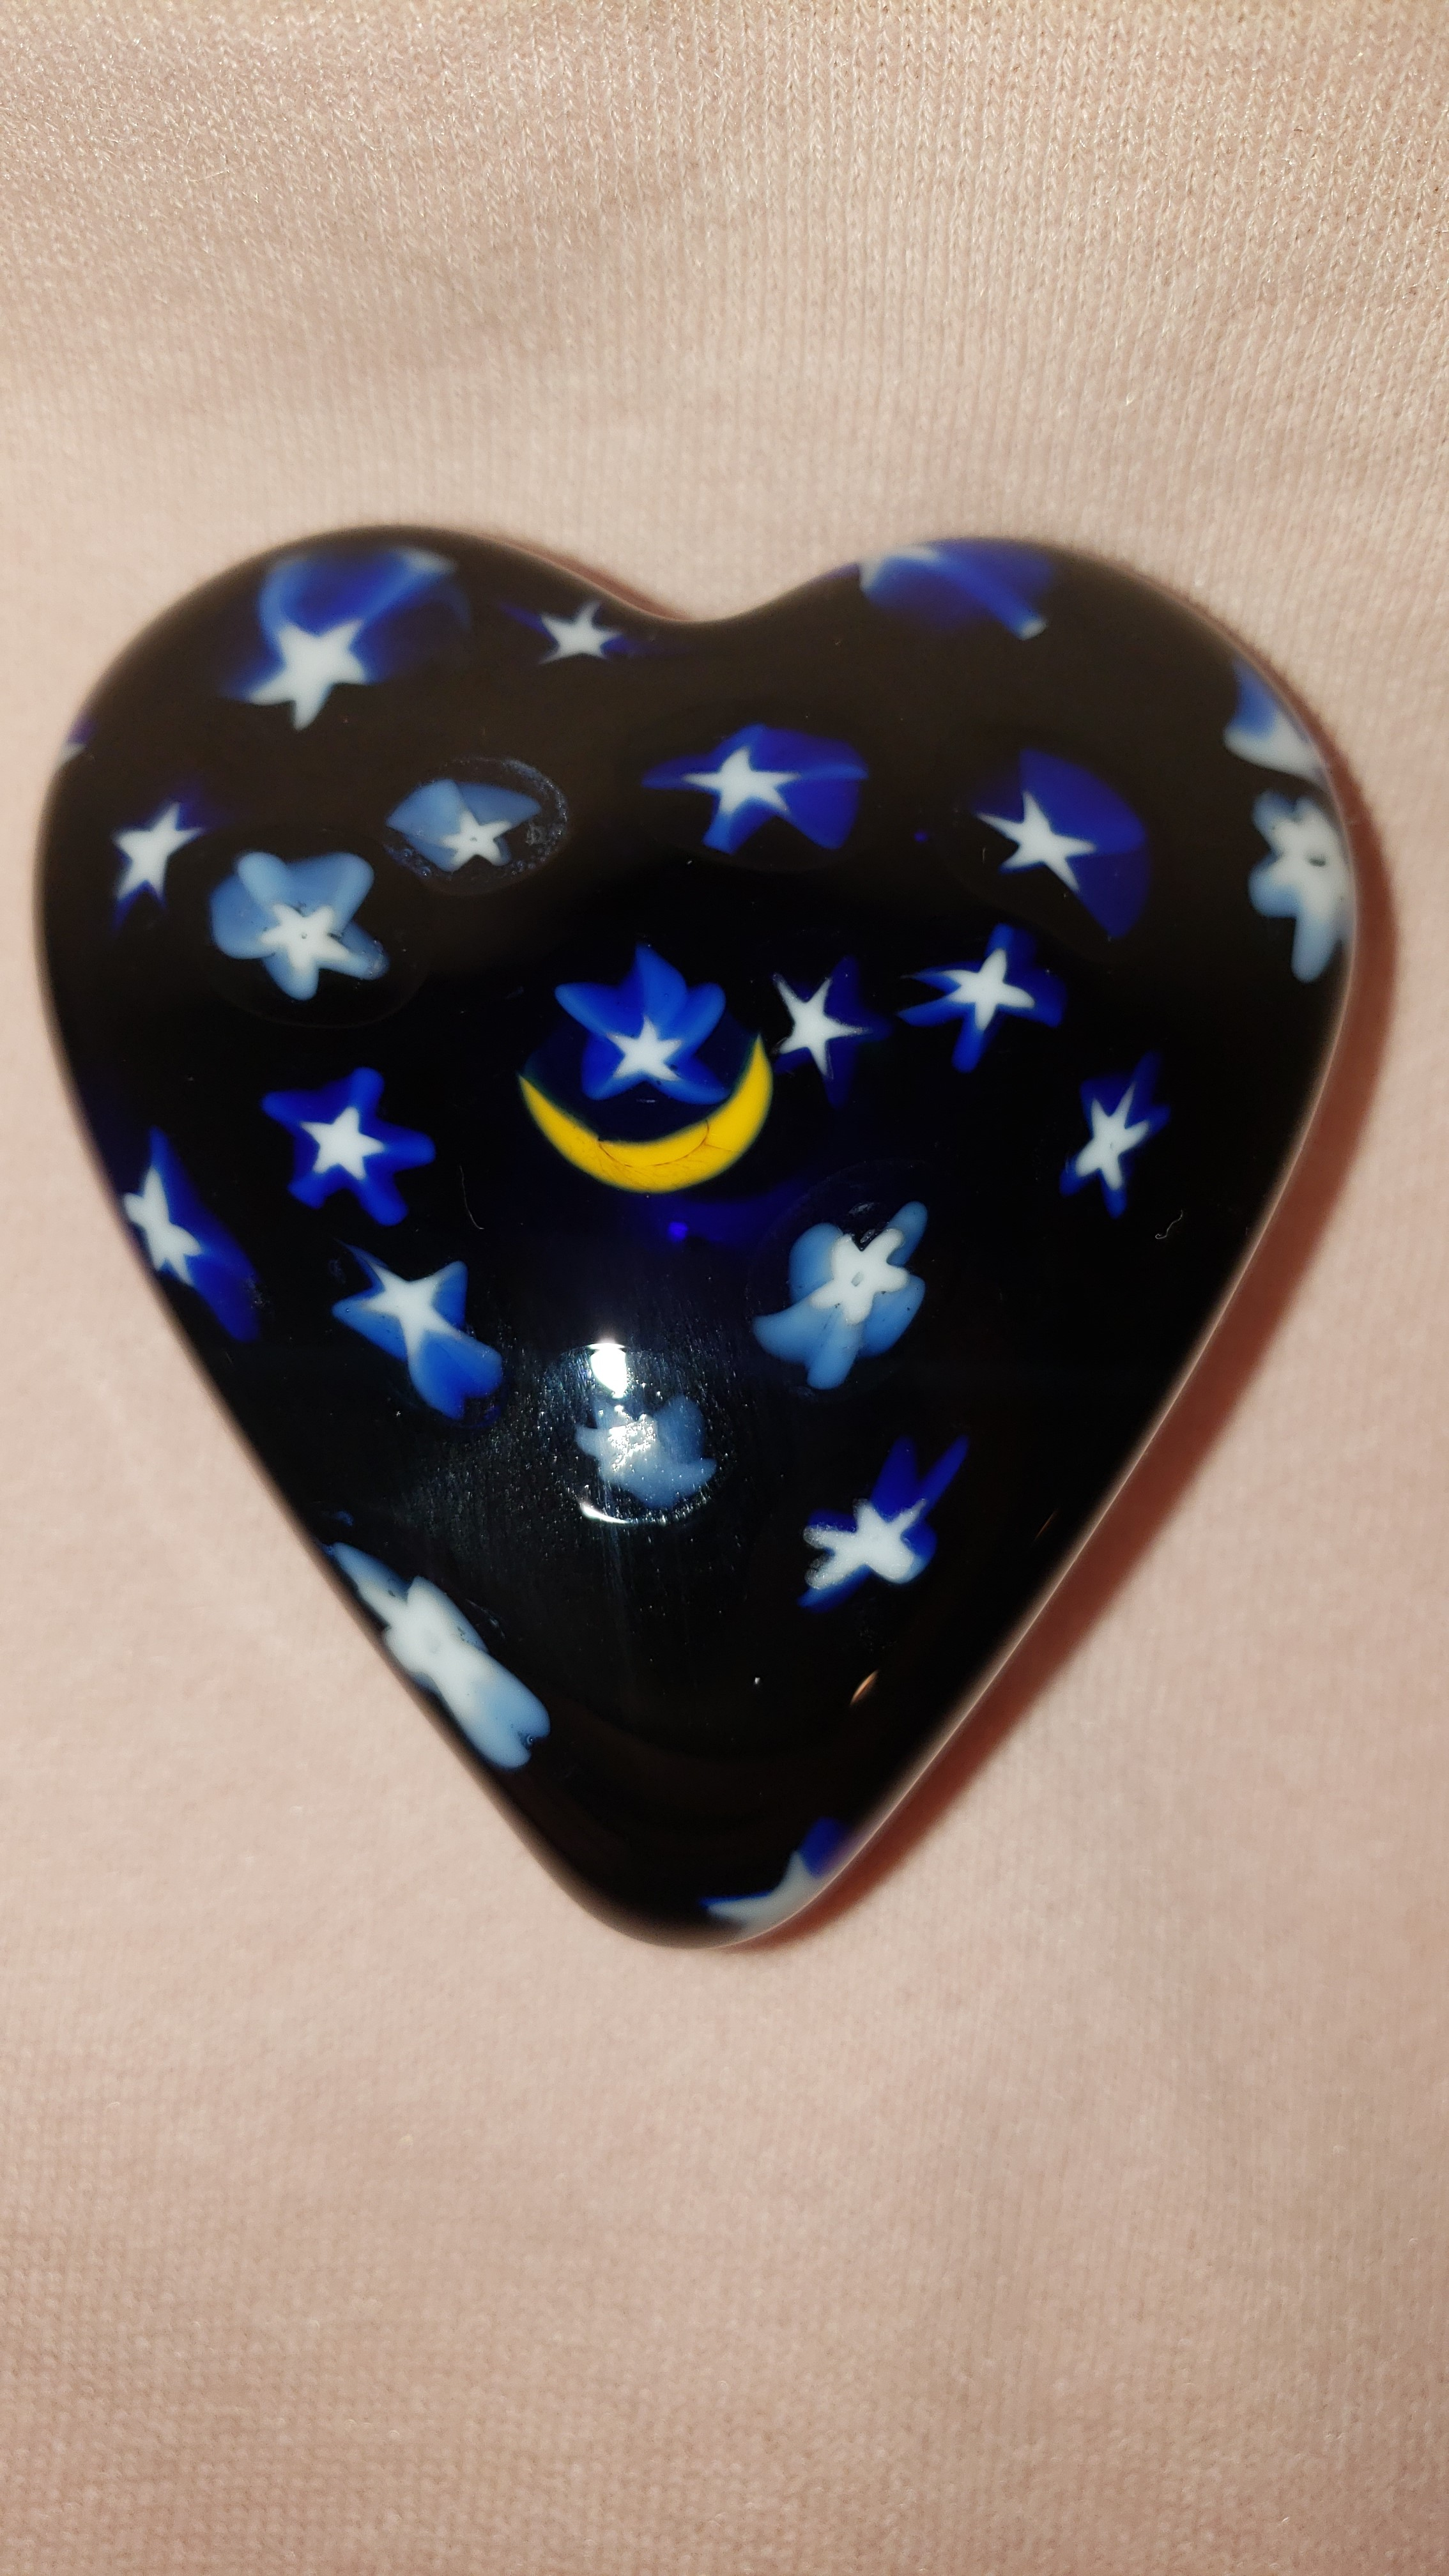 Moon and Stars Glass Heart Paperweight - by David Salazar As Seen In...